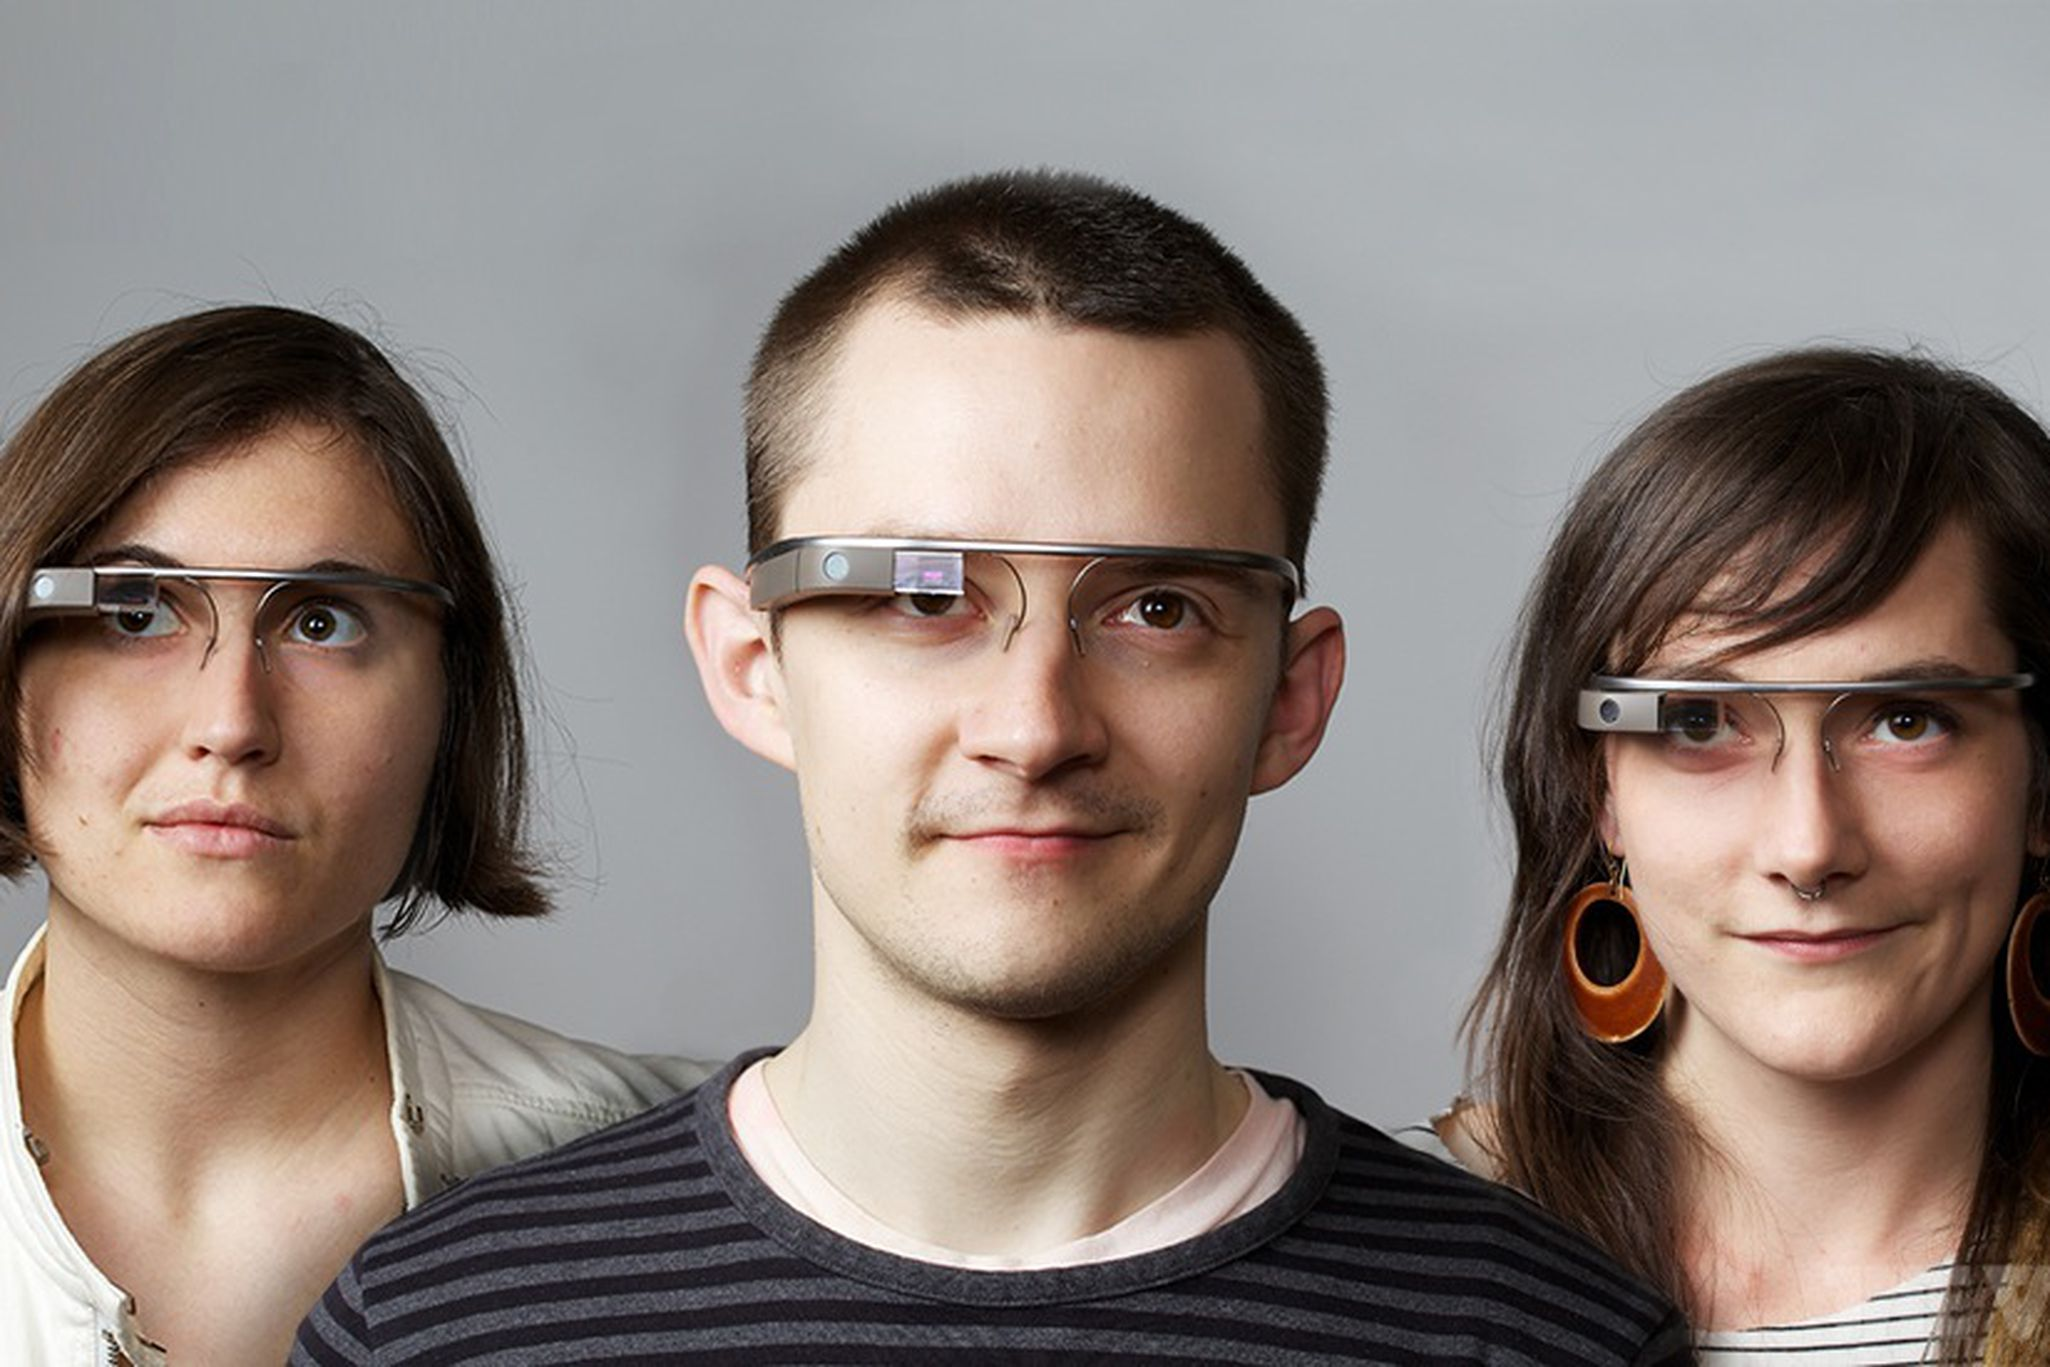 ec31ea8429c Google Glass apps  everything you can do right now